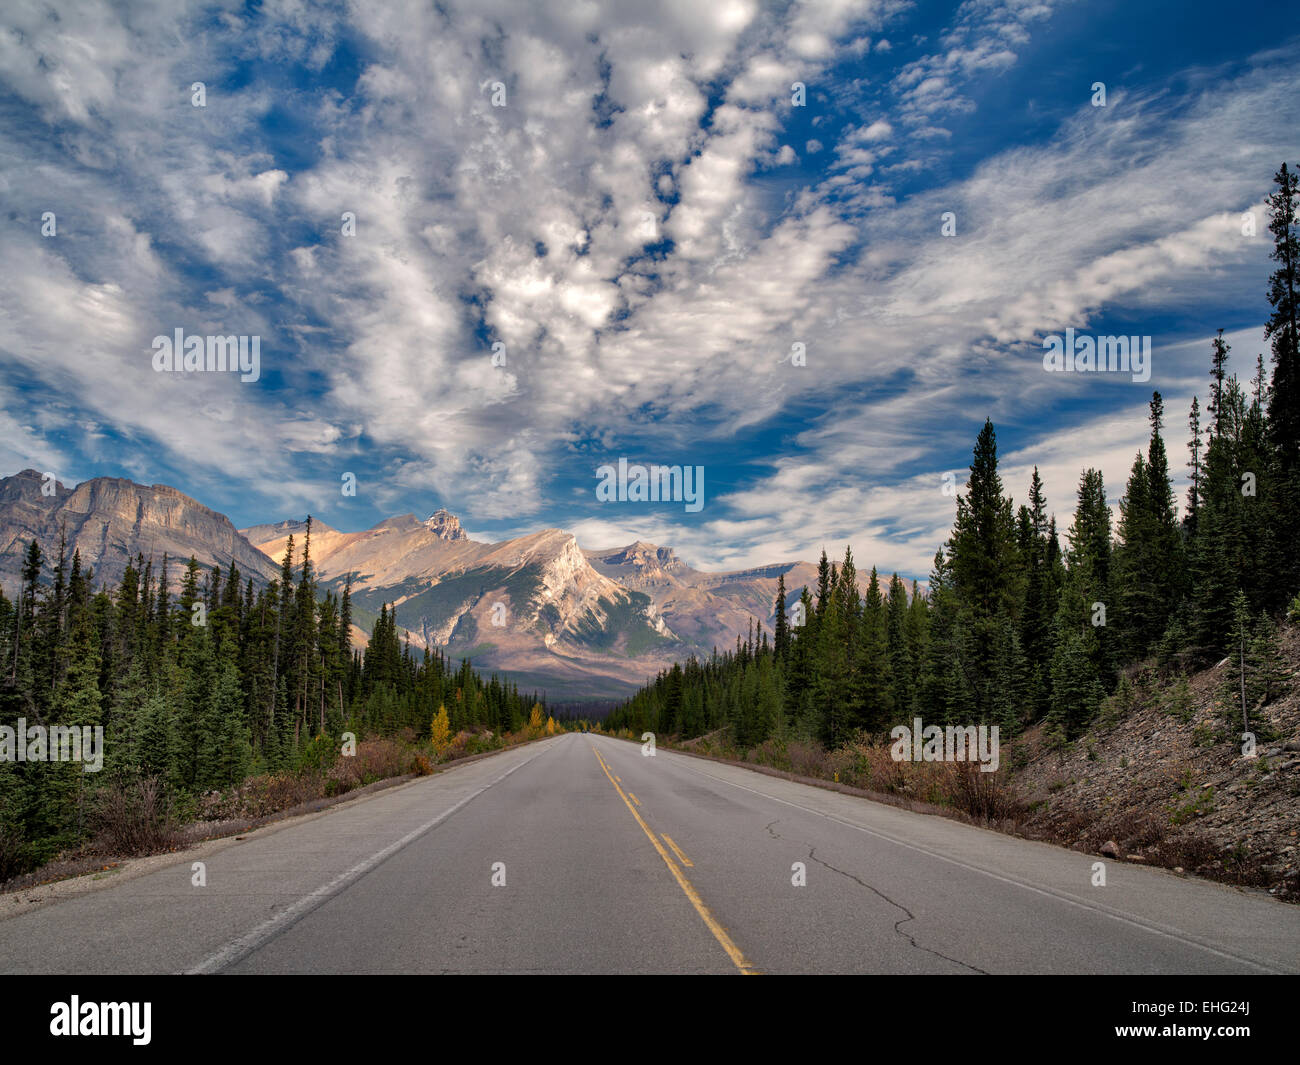 Road, dans le parc national Banff, Alberta, Canada Photo Stock